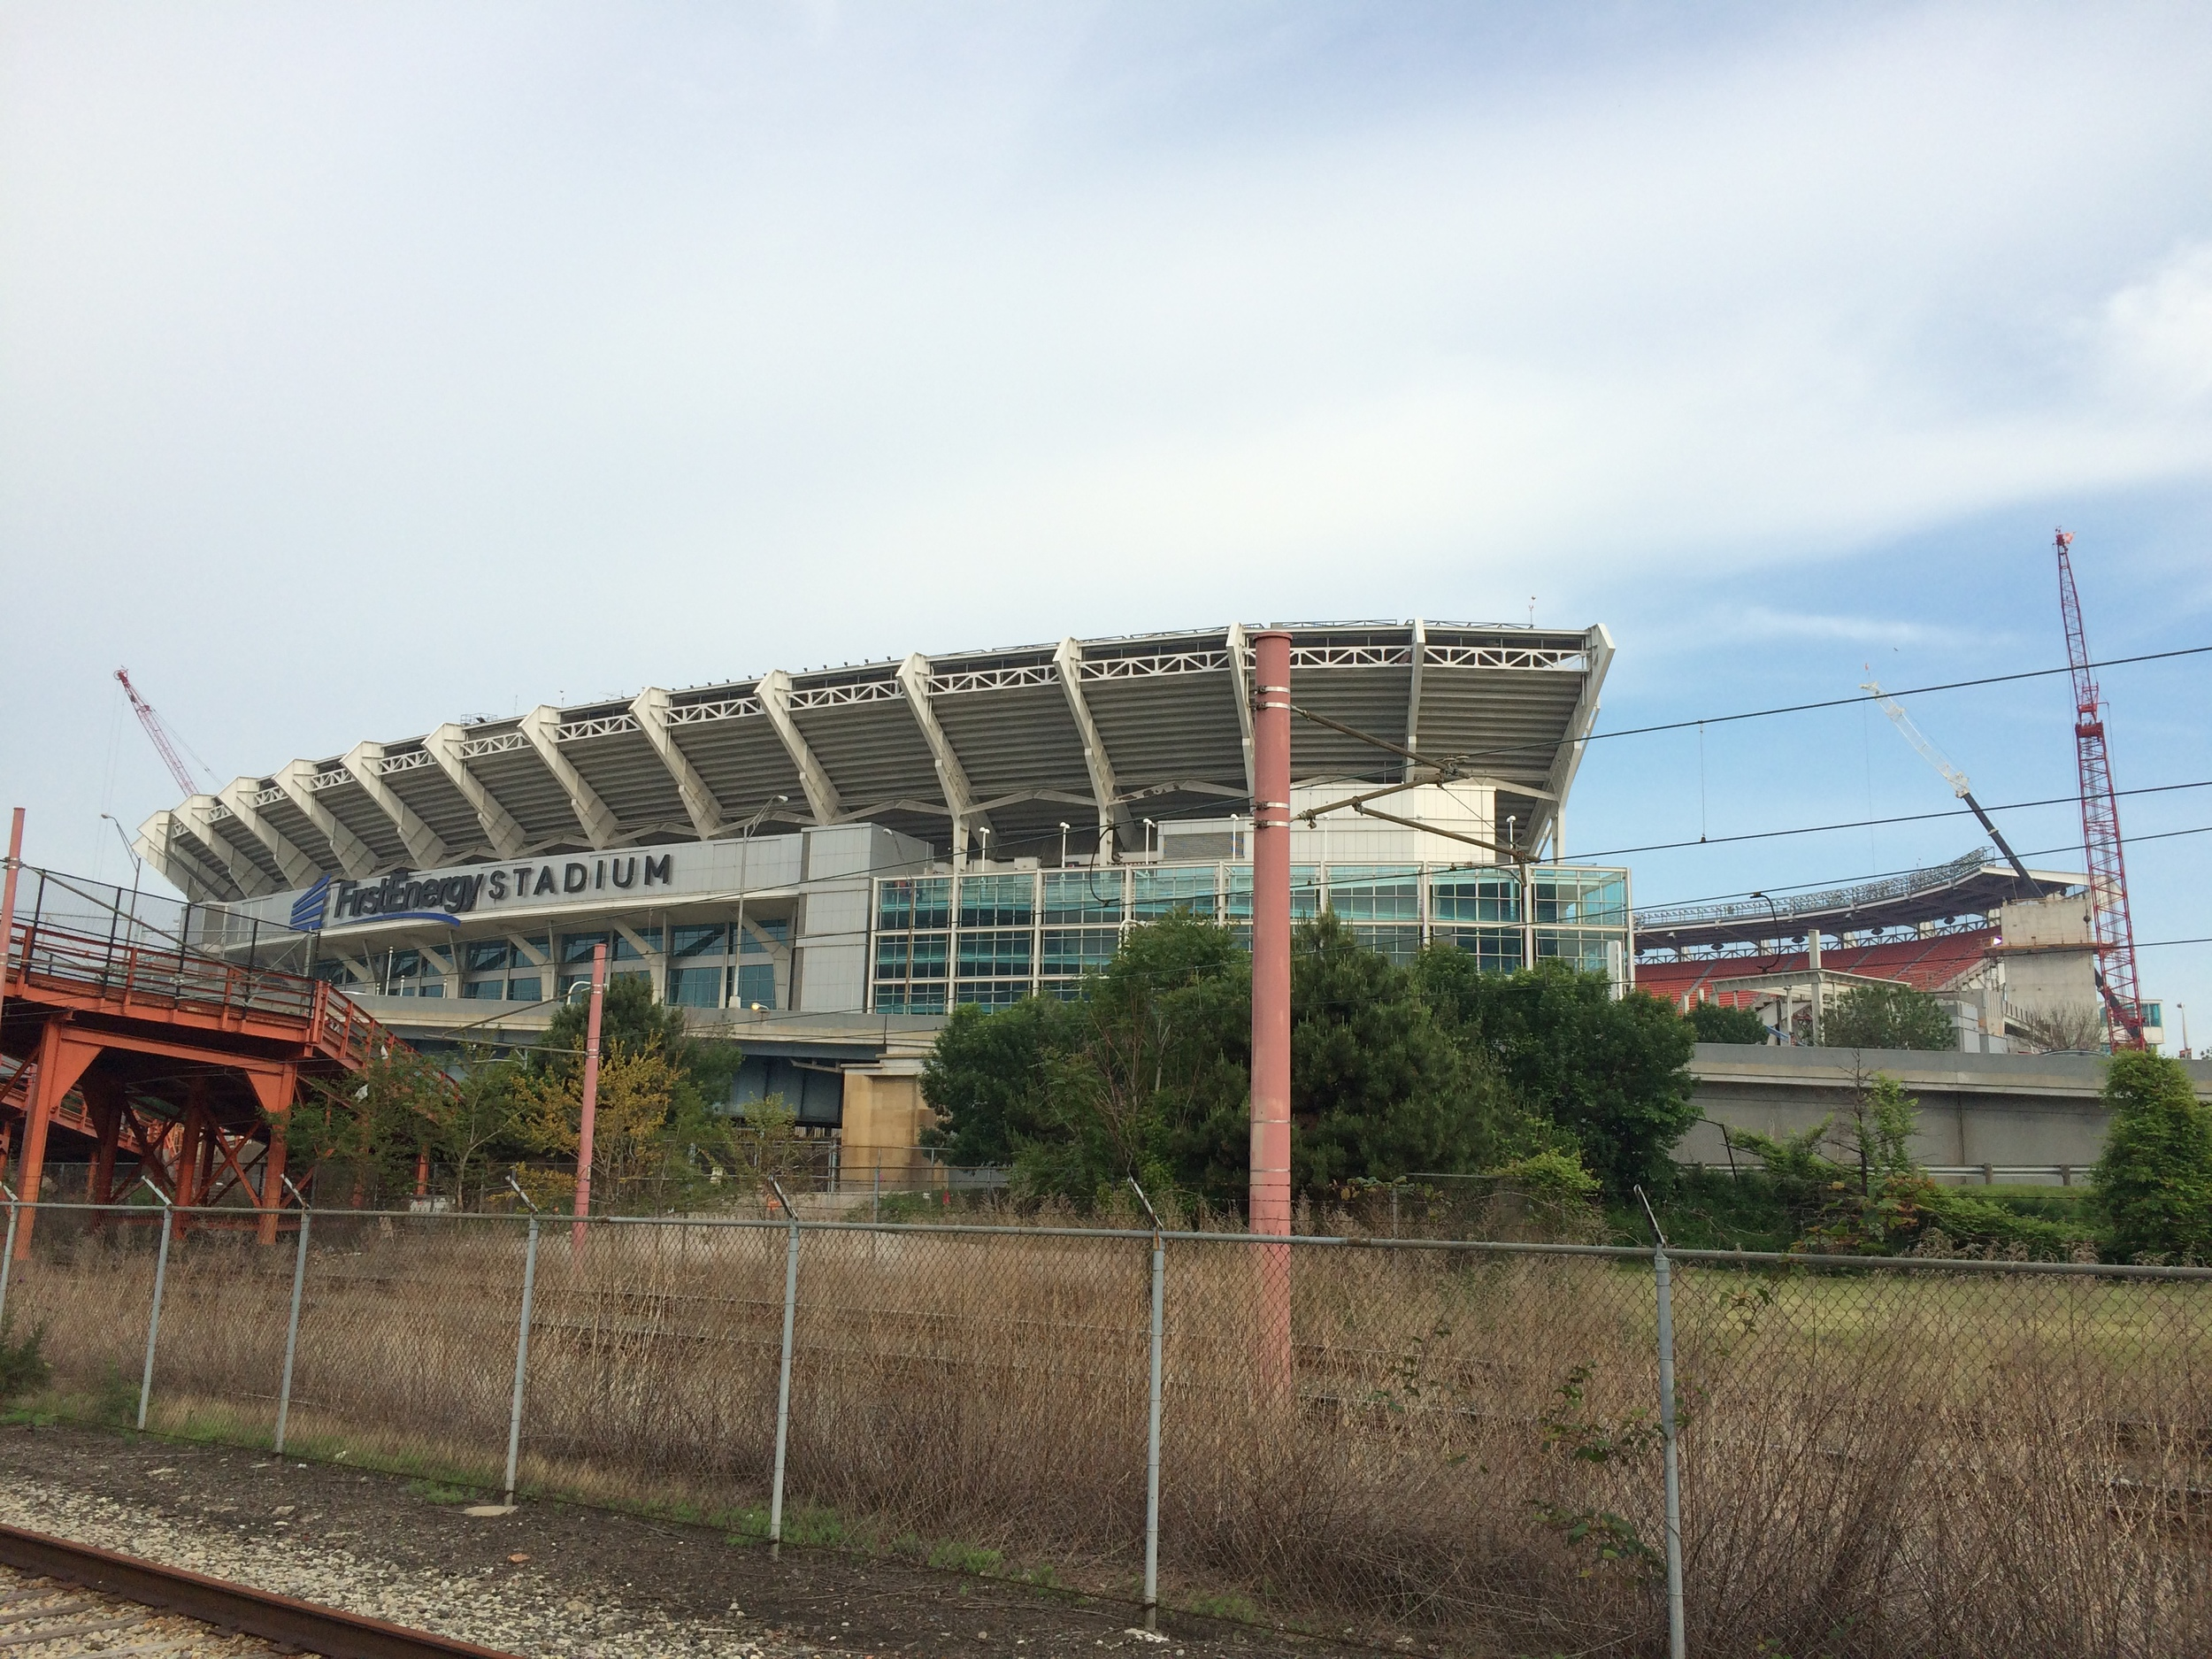 First Energy Stadium, home of the NFL's Cleveland Browns is right across the street from the Amtrak station in Cleveland.